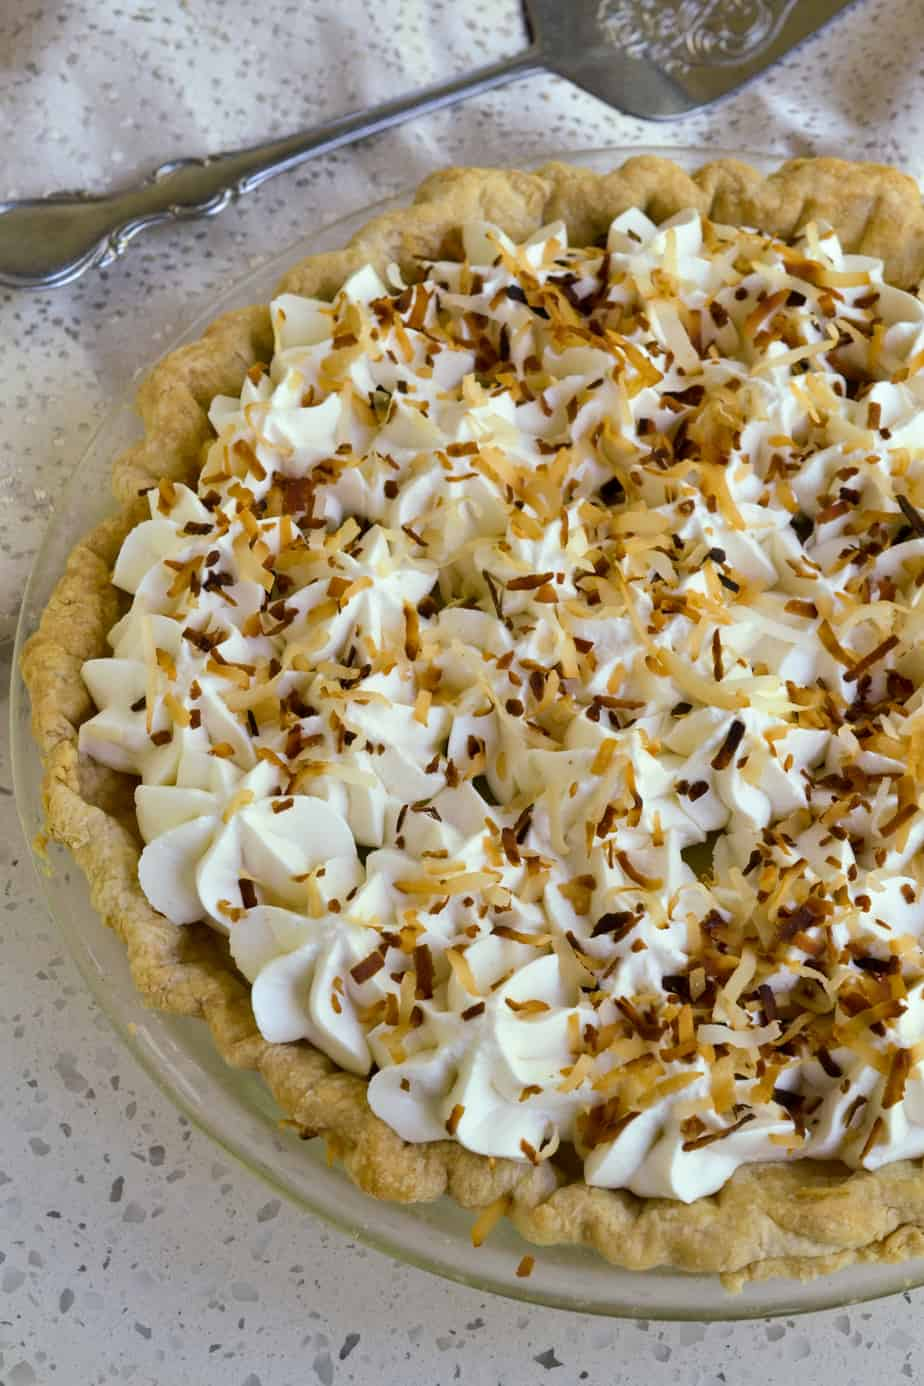 The top of this classic cream pie is topped with whipped cream and toasted coconut.